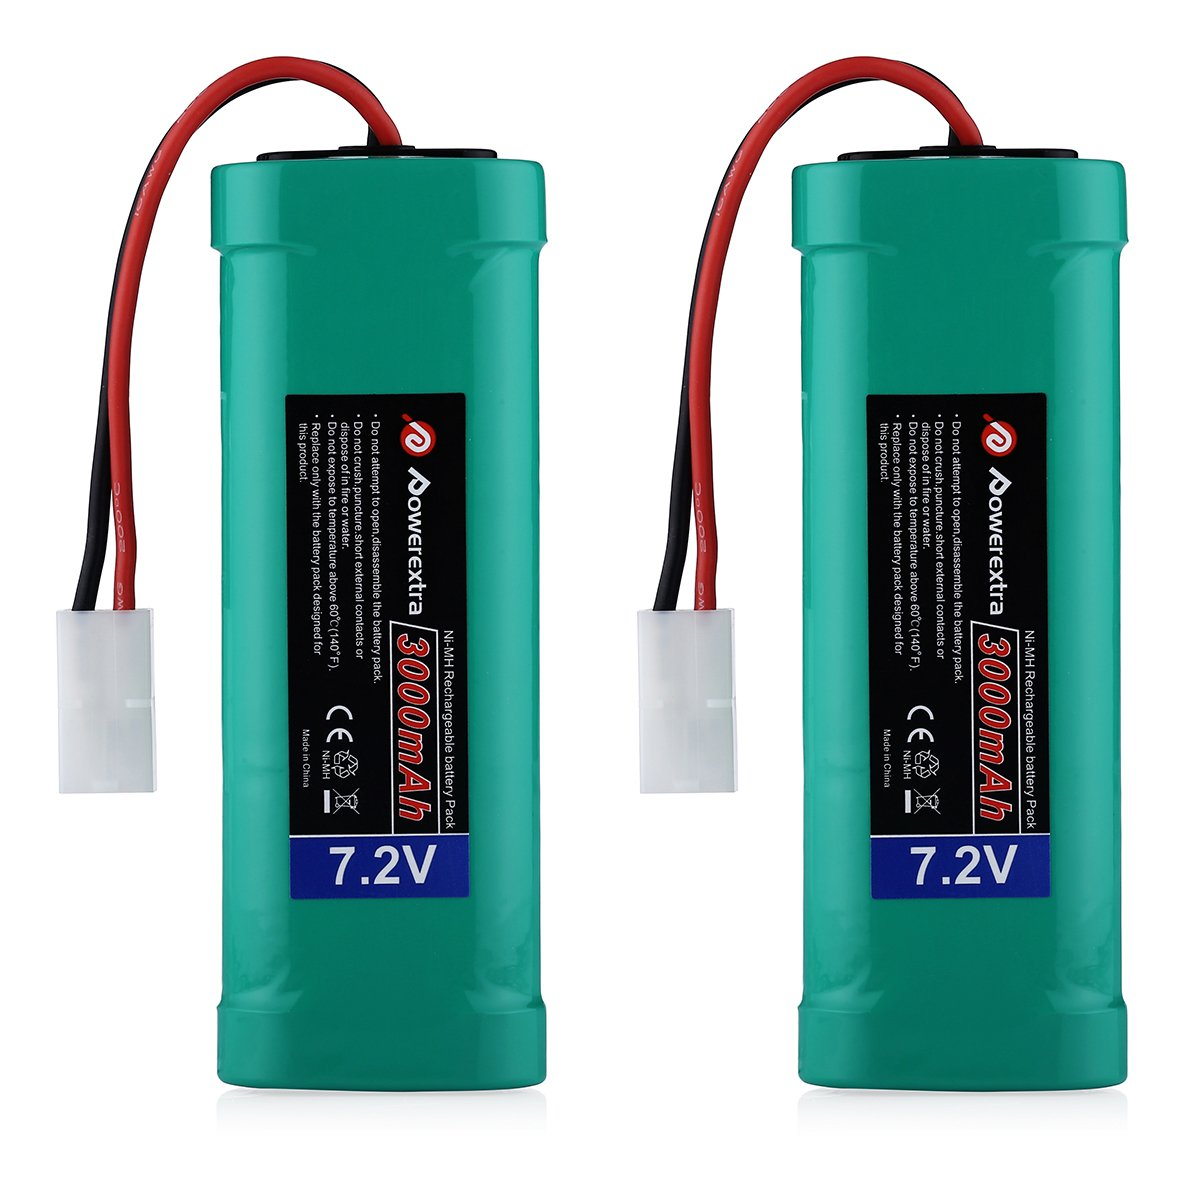 Powerextra 2 pcs 7.2V 3000mAh Flat NiMH High Power Battery Packs with Tamiya Connectors for KET Connectors for RC Cars, RC Truck, RC Airplane, RC Helicopter, RC Boat